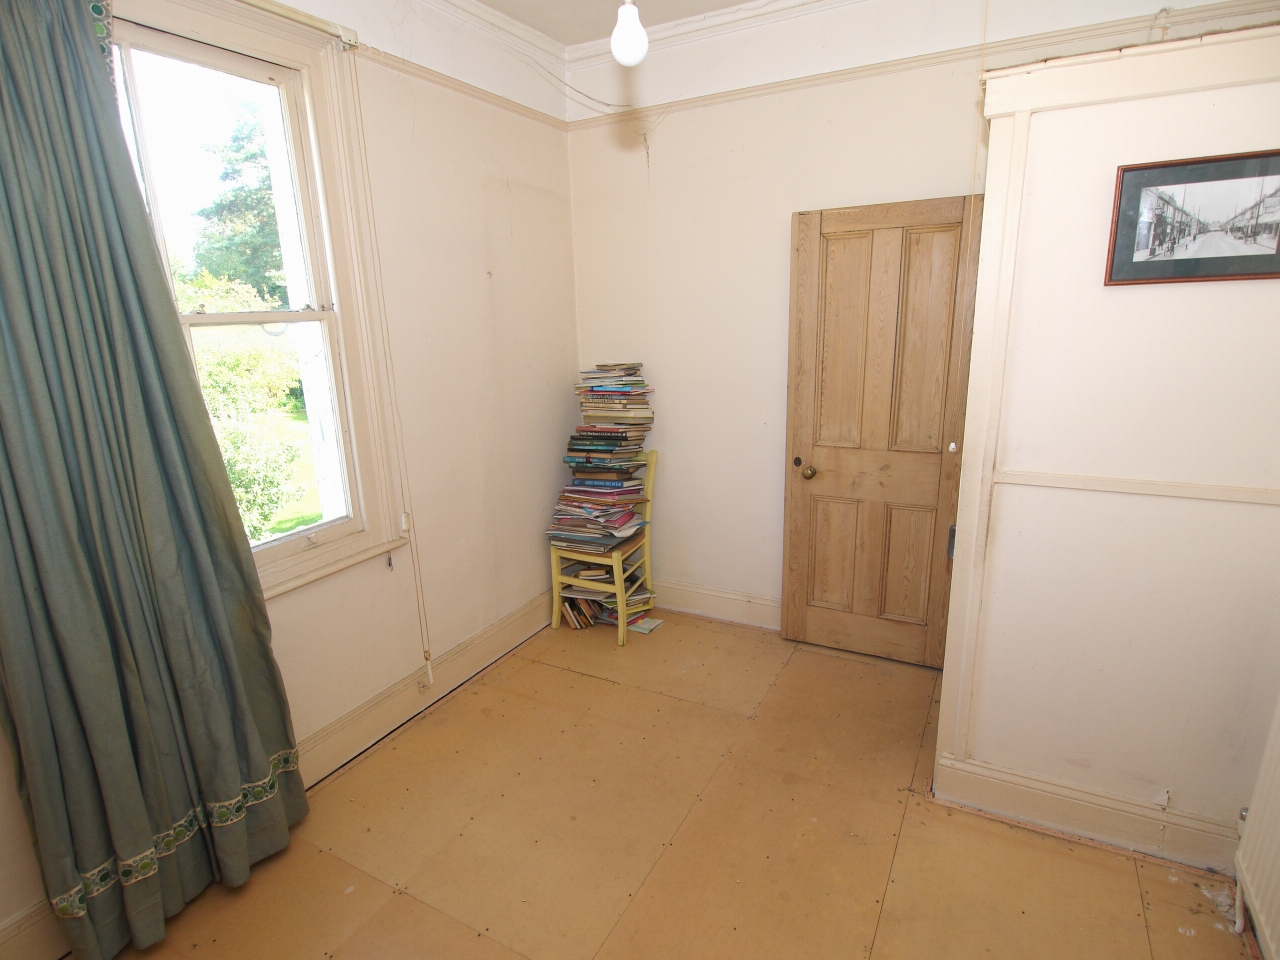 2 bedroom semi-detached house Sold in Sevenoaks - Photograph 5